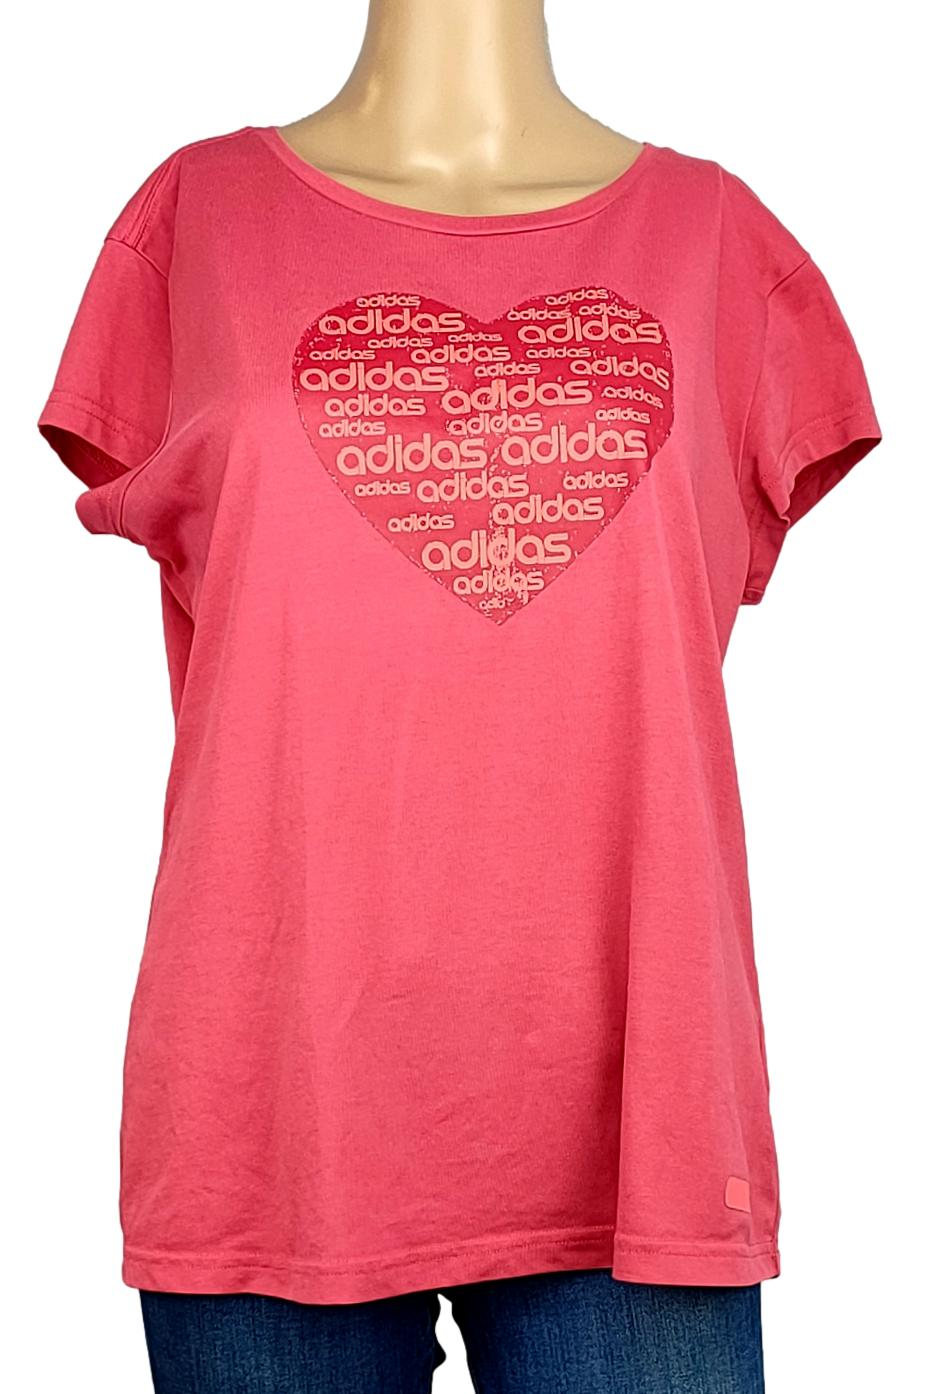 T-Shirt Adidas -Taille L